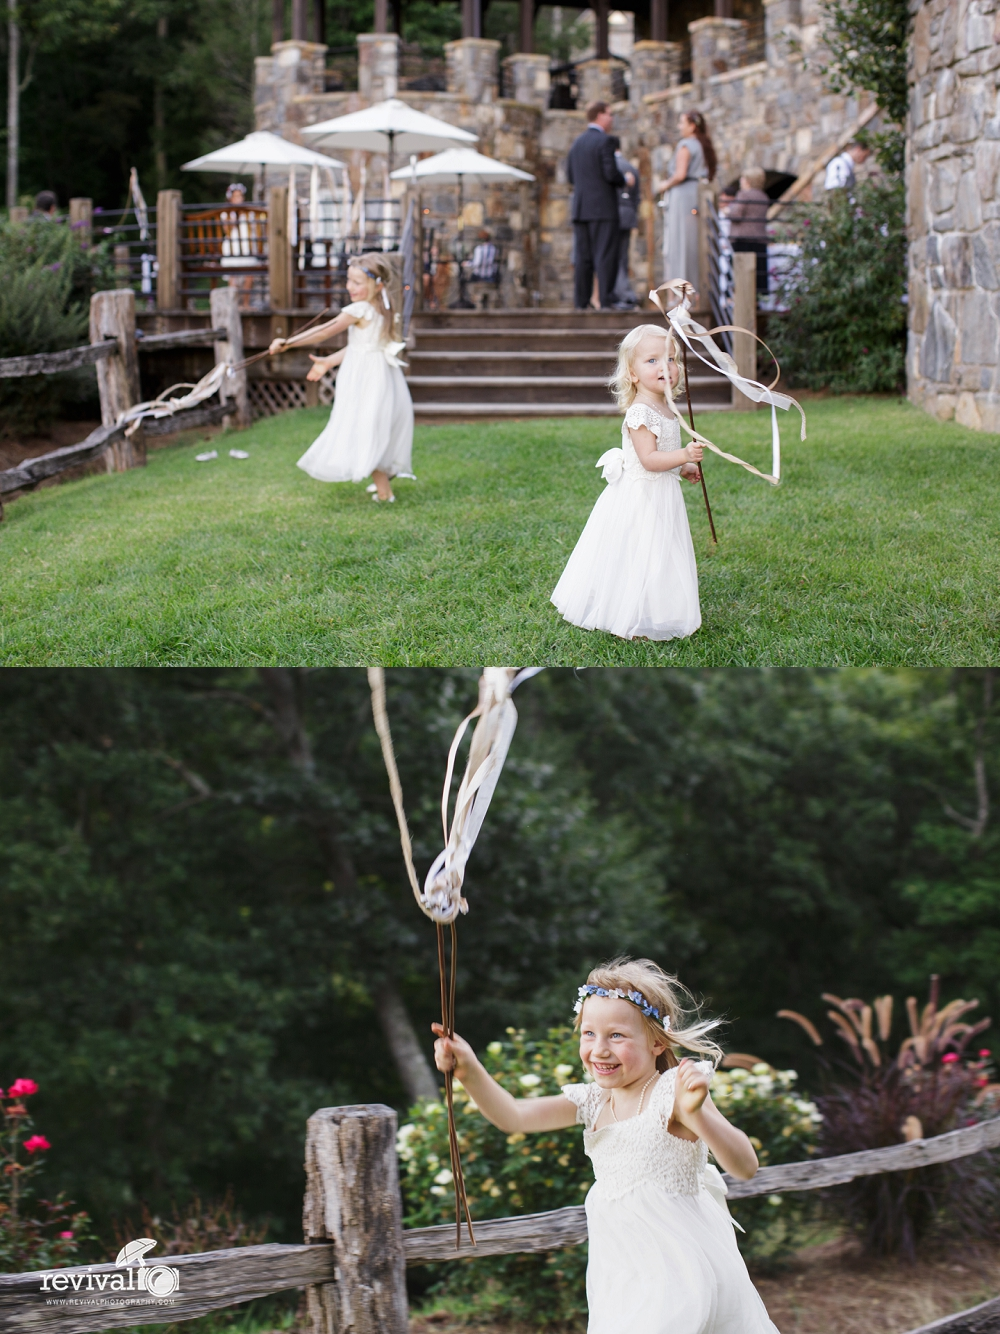 Ribbon Wands. We loved these ribbon wands that our bride made for the guests! Whimsical and perfect for a fairytale wedding. Perfect for a grand exit as well!